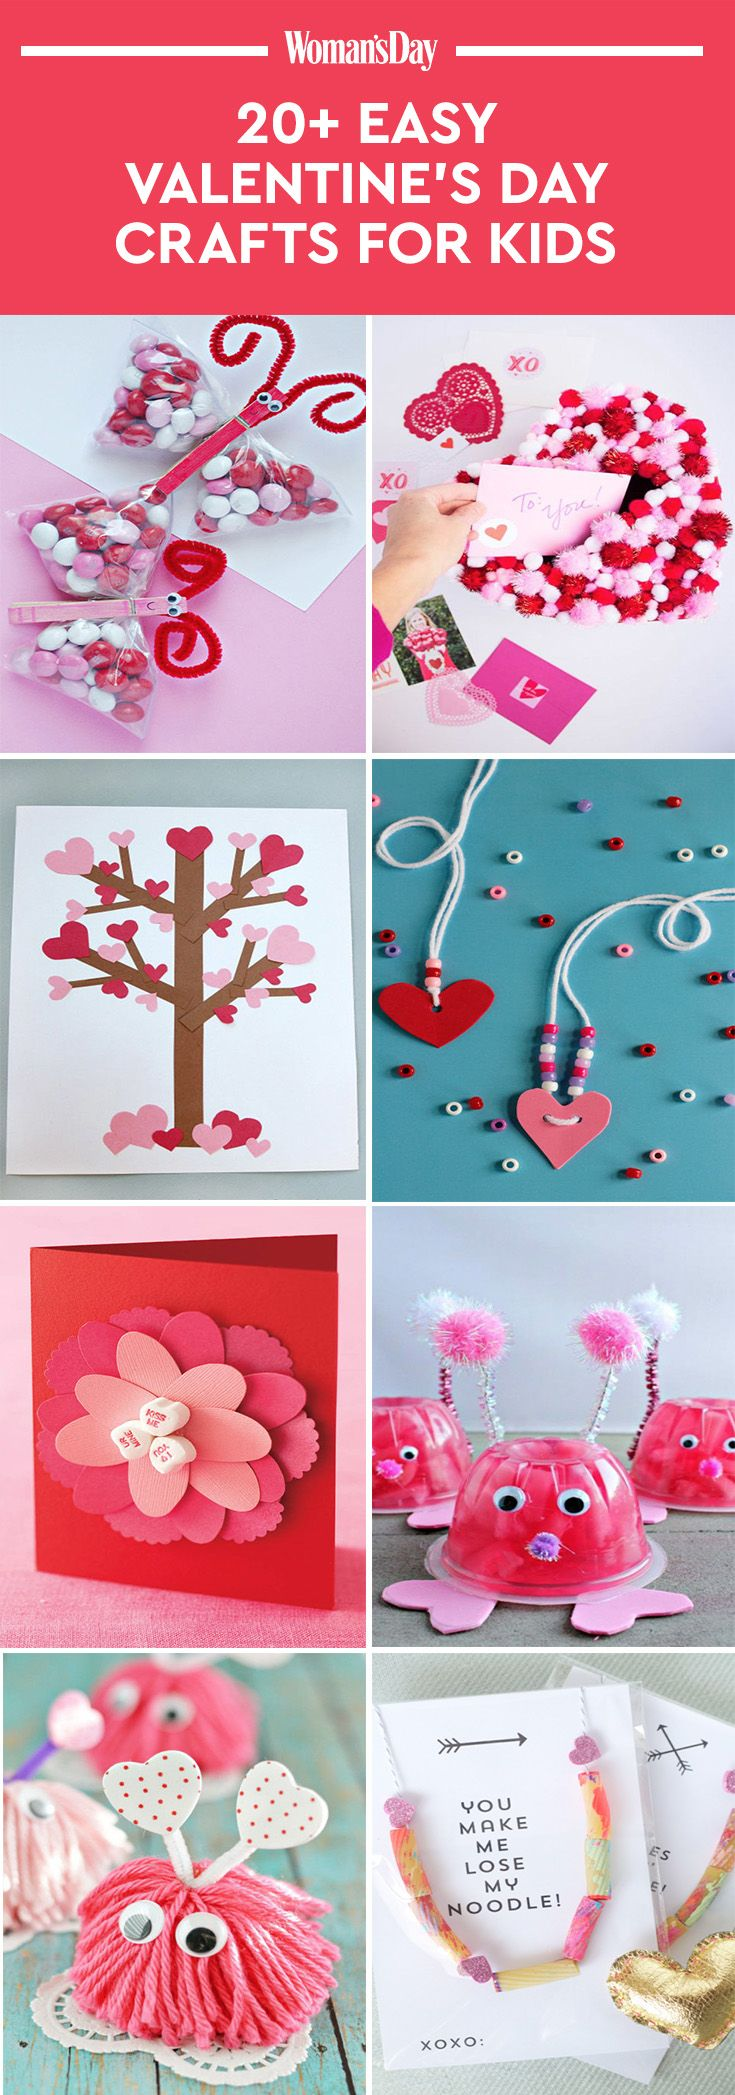 27 valentine s day crafts for kids fun heart arts and crafts